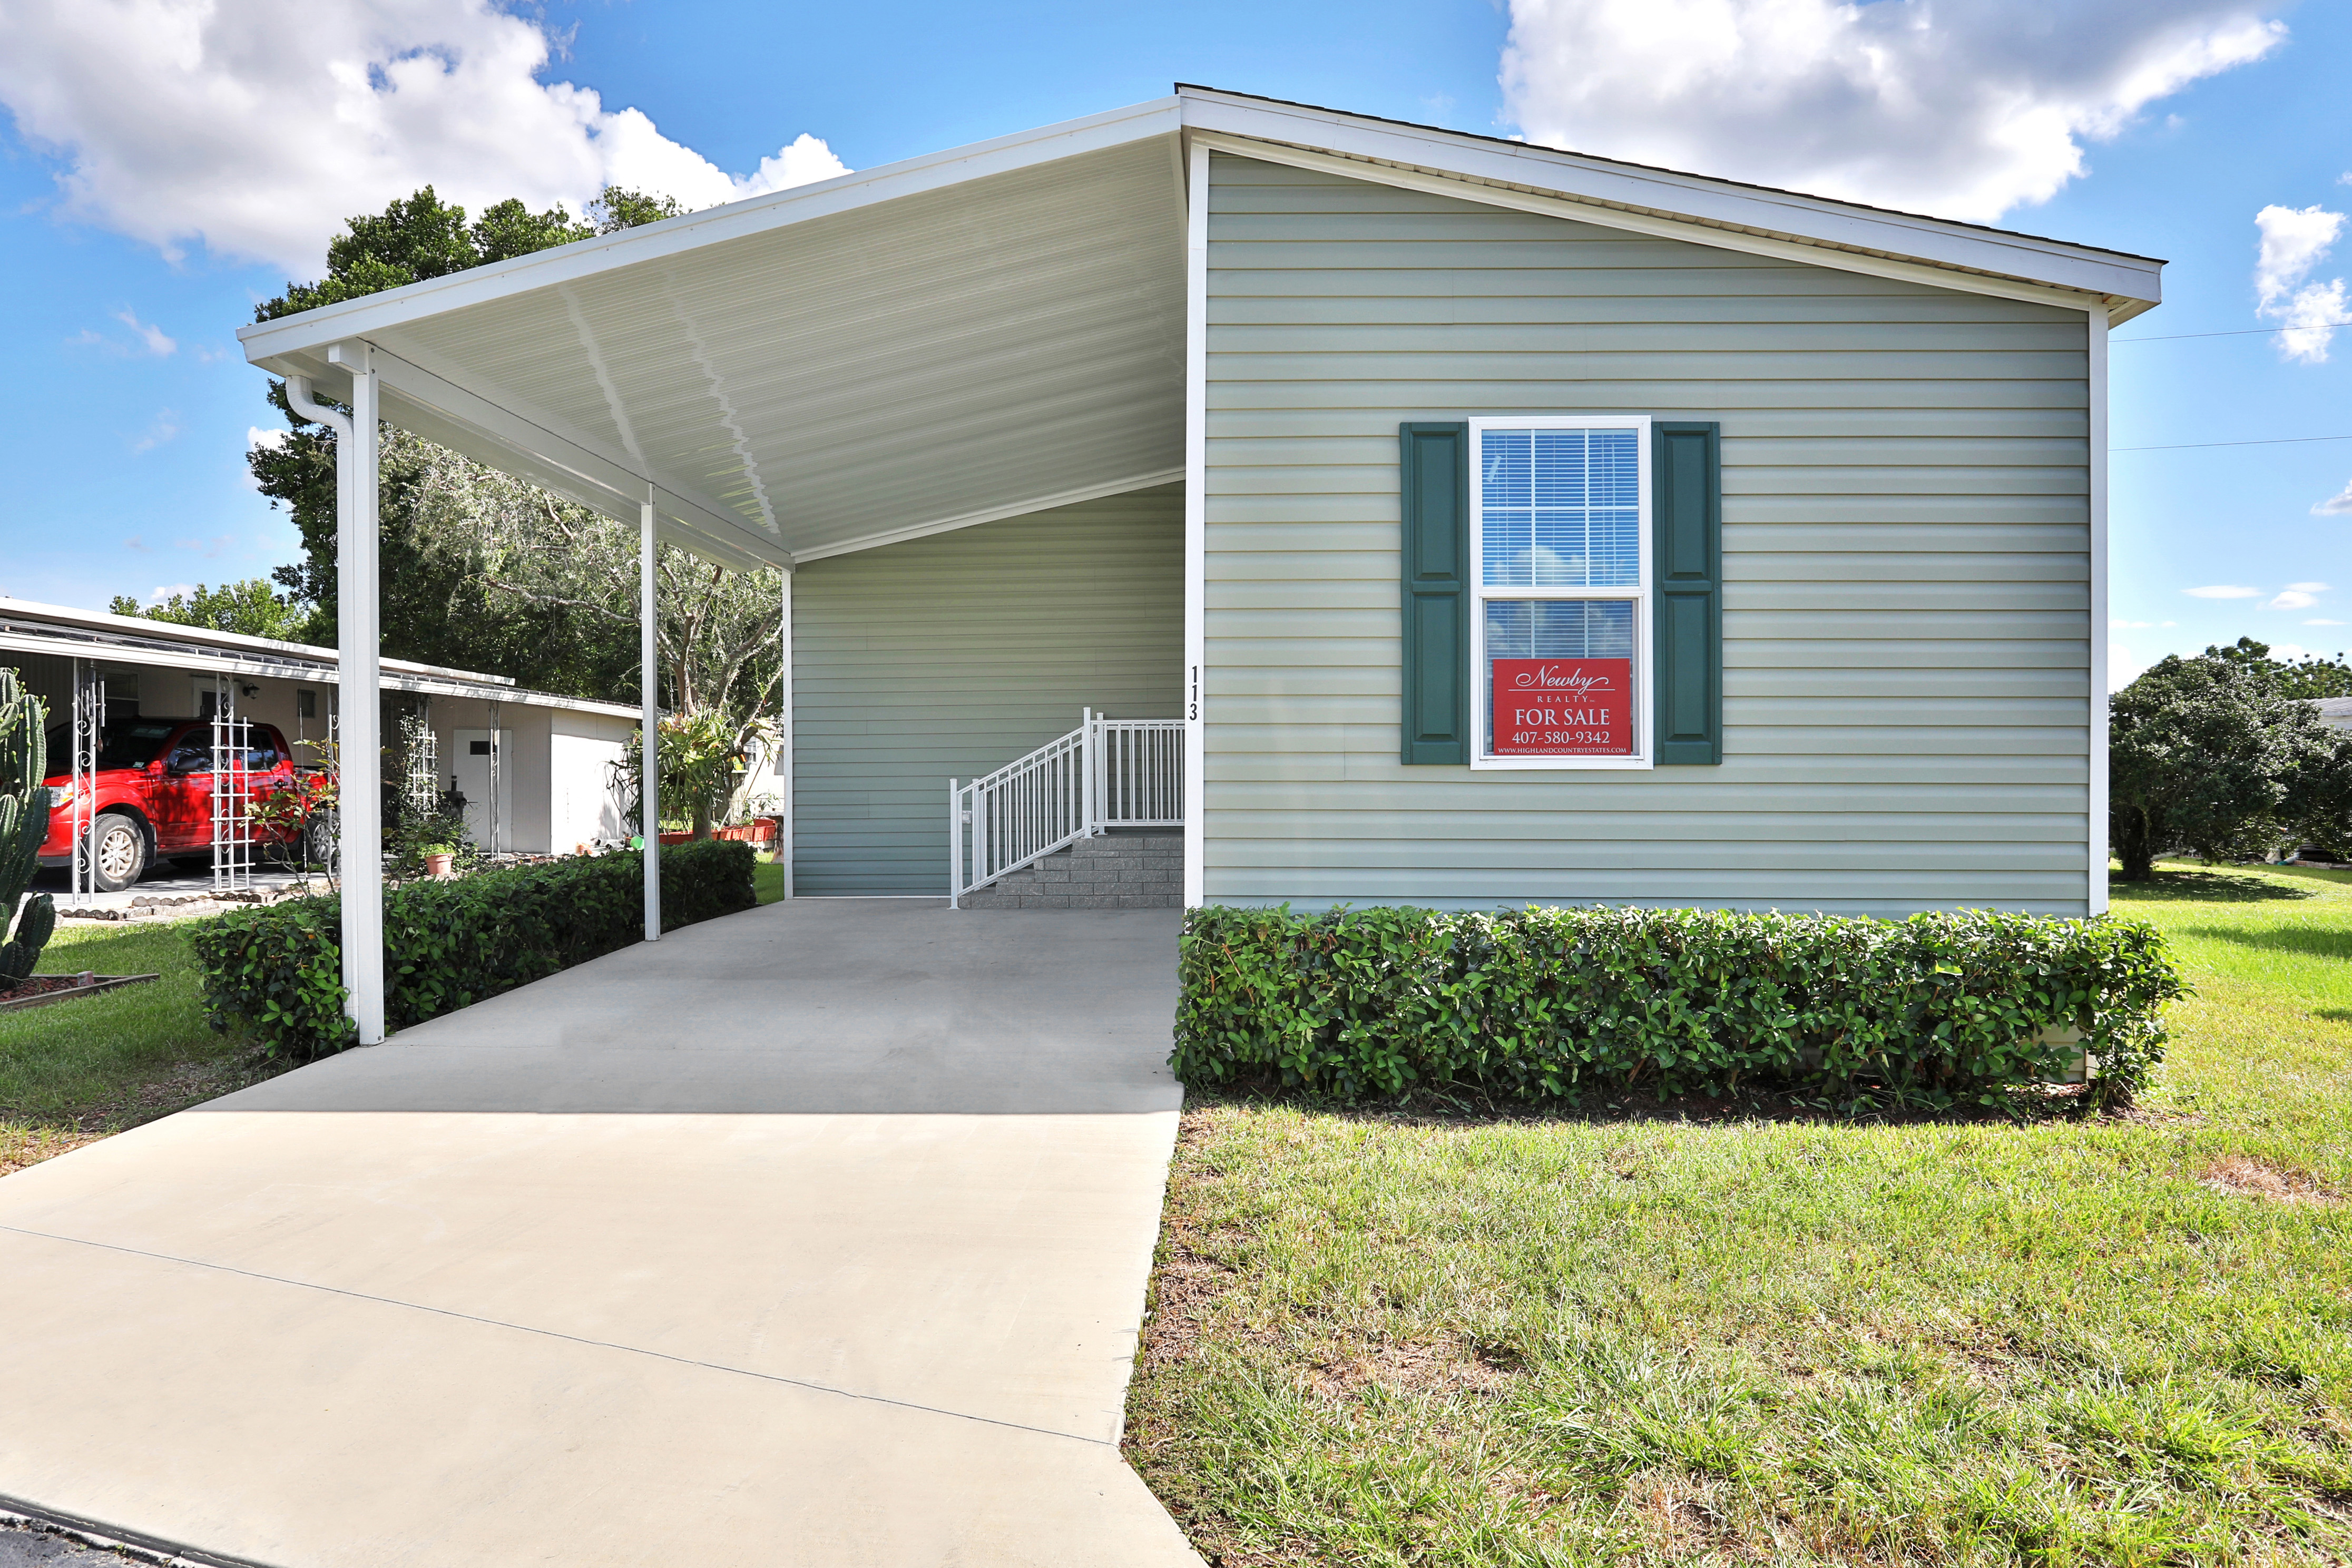 113 Plantation Ave., DeBary, Florida 32713, 2 Bedrooms Bedrooms, ,2 BathroomsBathrooms,Residential,For Sale,113 Plantation Ave.,10943572